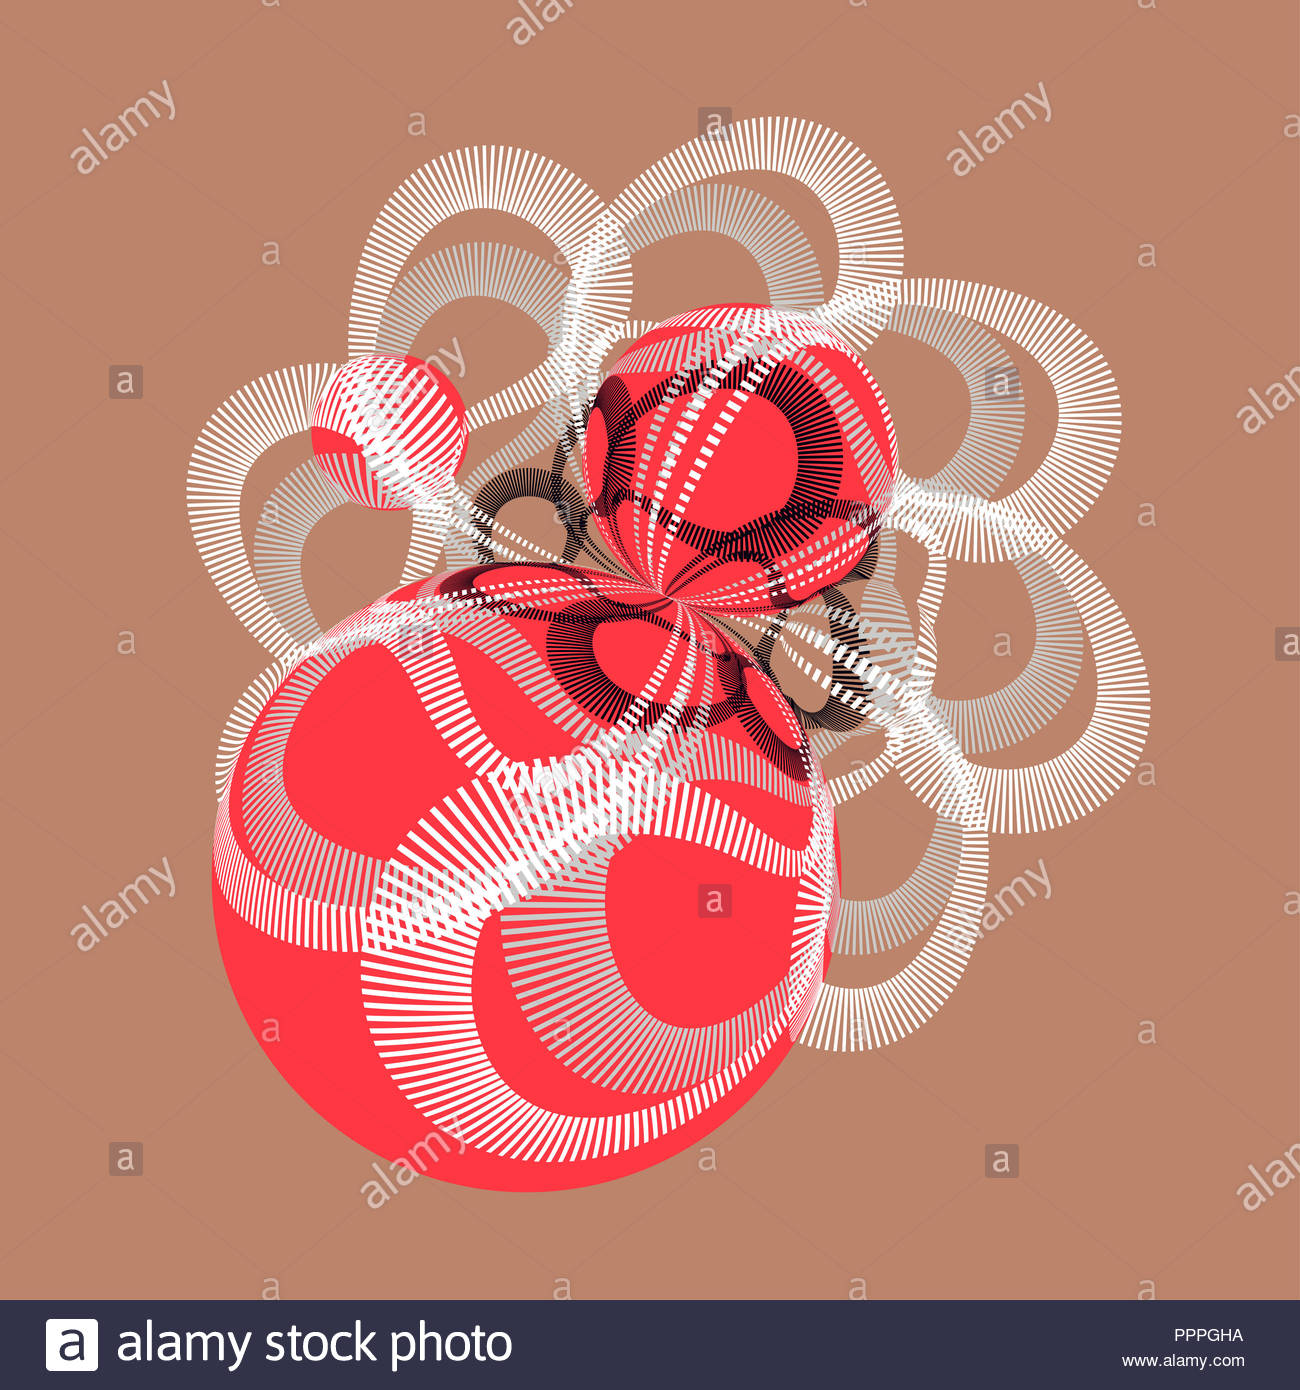 abstract illustration with geometric entanglement of spheres in copper and red - Stock Image